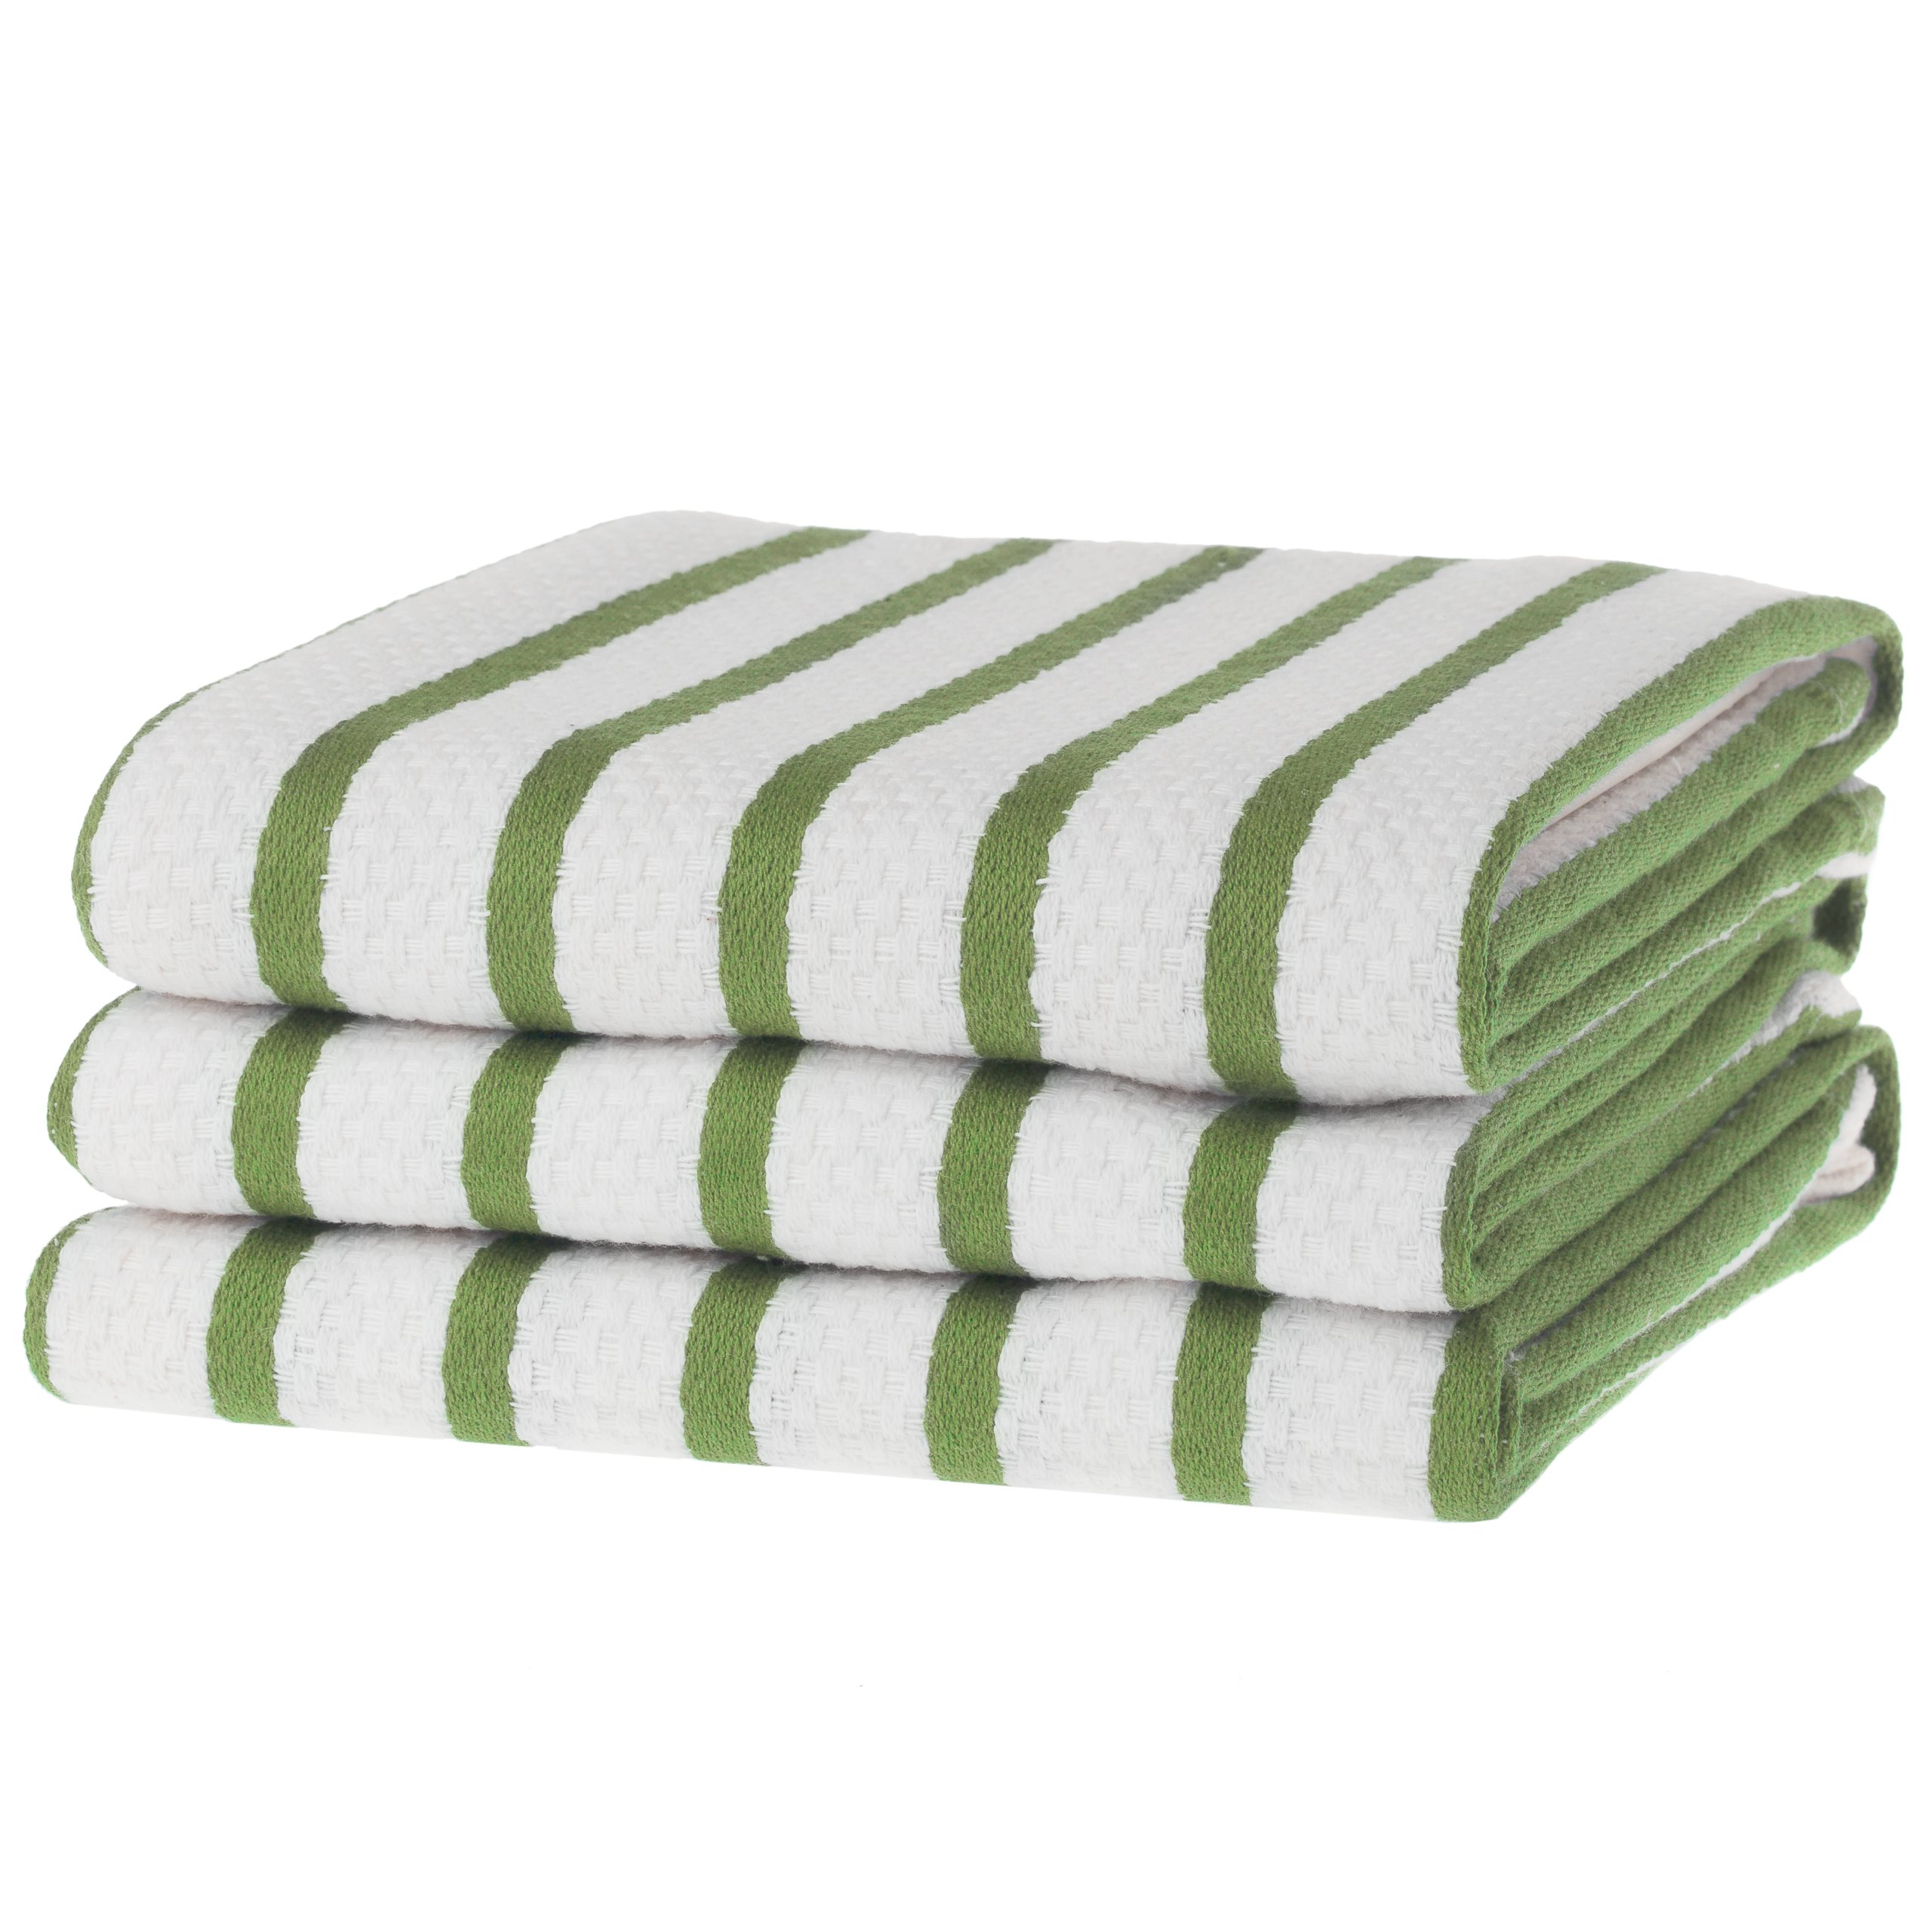 KAF Home Basket Weave Kitchen Towels, White with Green Stripes, Set of 3, 100% Cotton, Over-sized & Super Absorbent